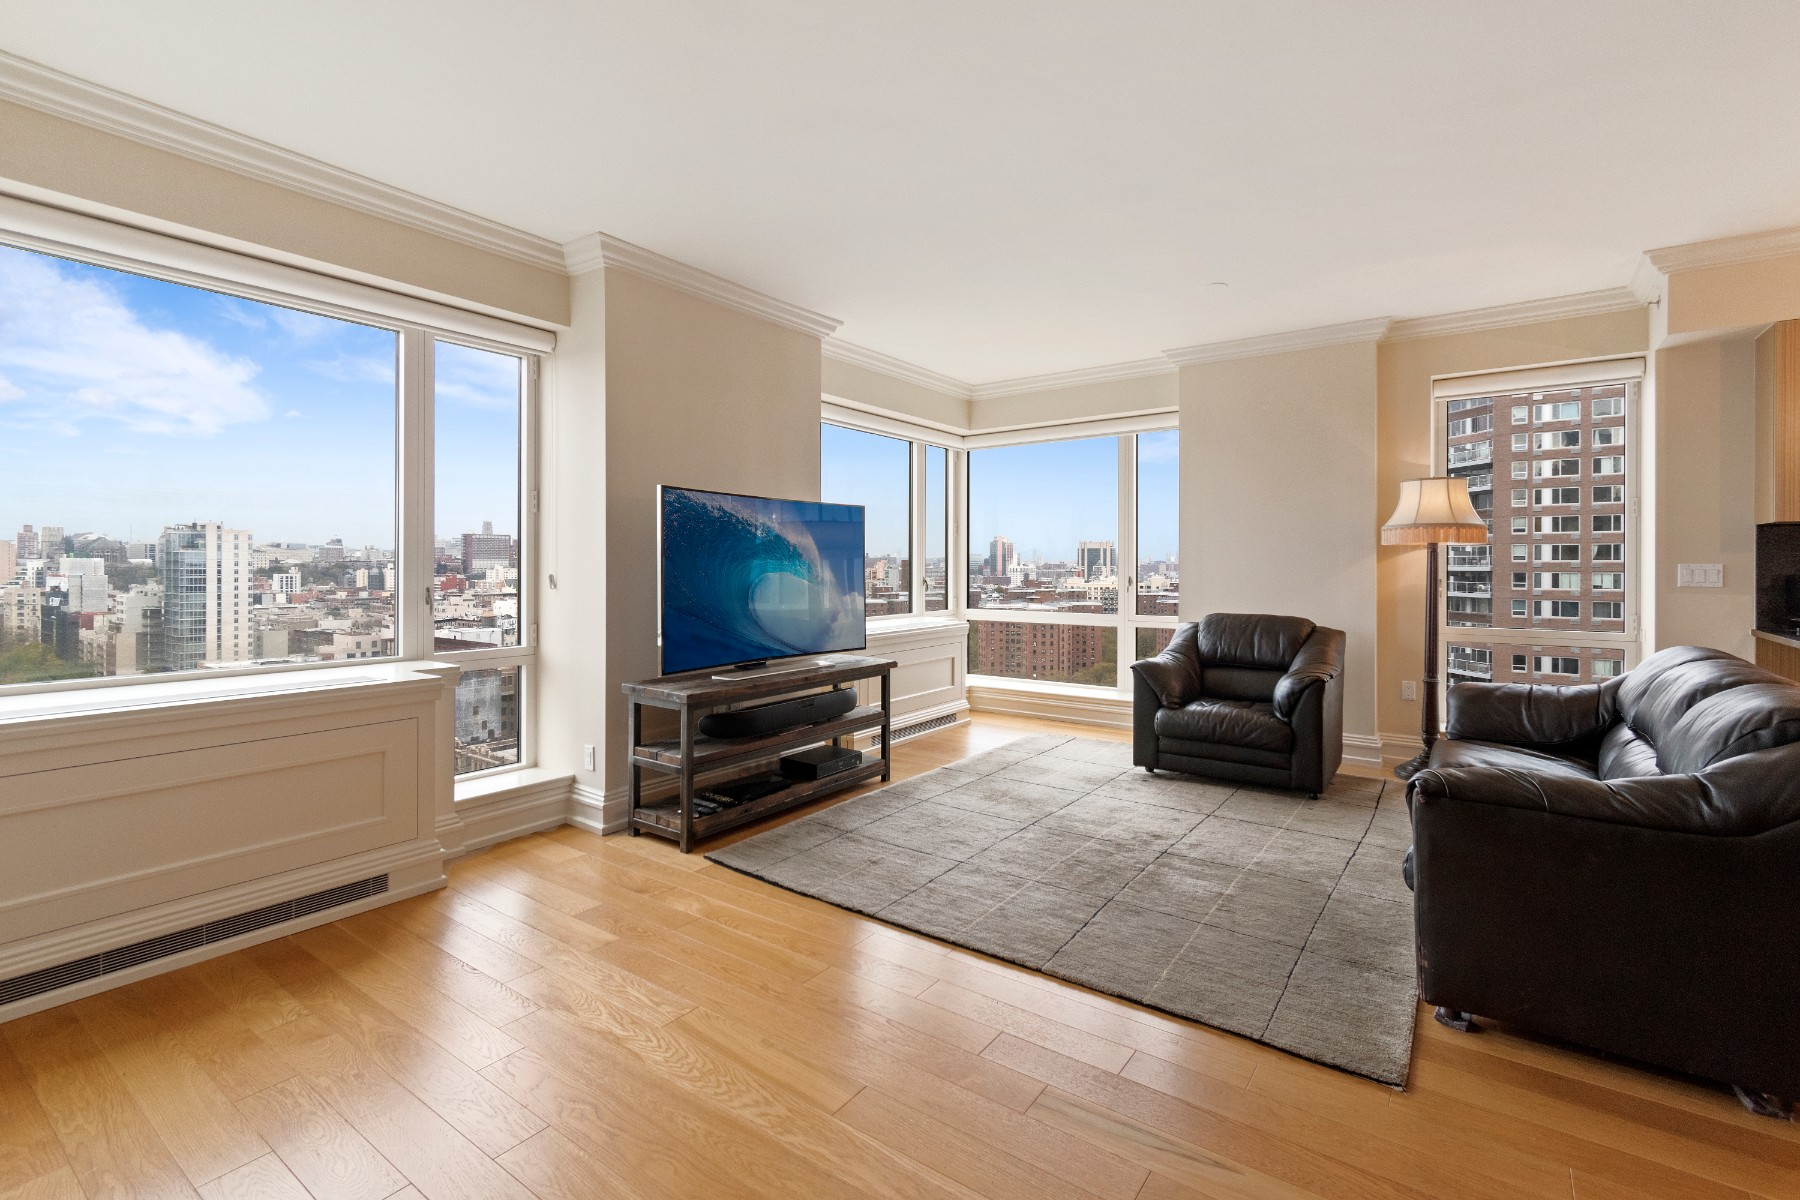 Perched on a high floor with unobstructed views of Central Park and the Manhattan skyline, this 3-bedroom apartment benefits from excellent lighting throughout as a result of its floor-to-ceiling windows and its Northern and Western exposure. The open layout allows for a large living room and dining area that is perfect for entertaining guests. This spacious and gracious 1,863 SF 3-bedroom, 3.5-bath offers a top-of-the-line open chefs kitchen with granite counter tops and custom made cabinetry, 10' ceilings, beautiful crown moldings, a washer/dryer that can be found in the guest powder room conveniently located off the living room, and hardwood floors throughout the apartment. All of the bedrooms have an en-suite bathroom. The master bedroom has a limestone en-suite bathroom with a stall shower, a soaking tub designed by Zuma, and double sink with marble counter tops made by Bianco Dolomiti. It also offers a one of a kind walk-in closet that is a unique addition for A line units.Building: 1280 5th Avenue was designed by the renowned American architect Robert A. M. Stern. It offers exceptional architecture, layout and design. The building offers excellent amenities such as: 24-hour doorman, concierge and live-in super, fitness center, children's play room, teen game room, parking (if available), a landscaped roof deck with BBQ grill, catering kitchen, formal dining room, and swimming pool. Location: The residences at One Museum Mile sit atop the Africa Center / Museum. The location provides convenient access to world-famous Museums, restaurants, shopping, and hospitals. The 2,3,4 and 6 trains, and multiple bus lines are located within minutes of 1280 5th Avenue.